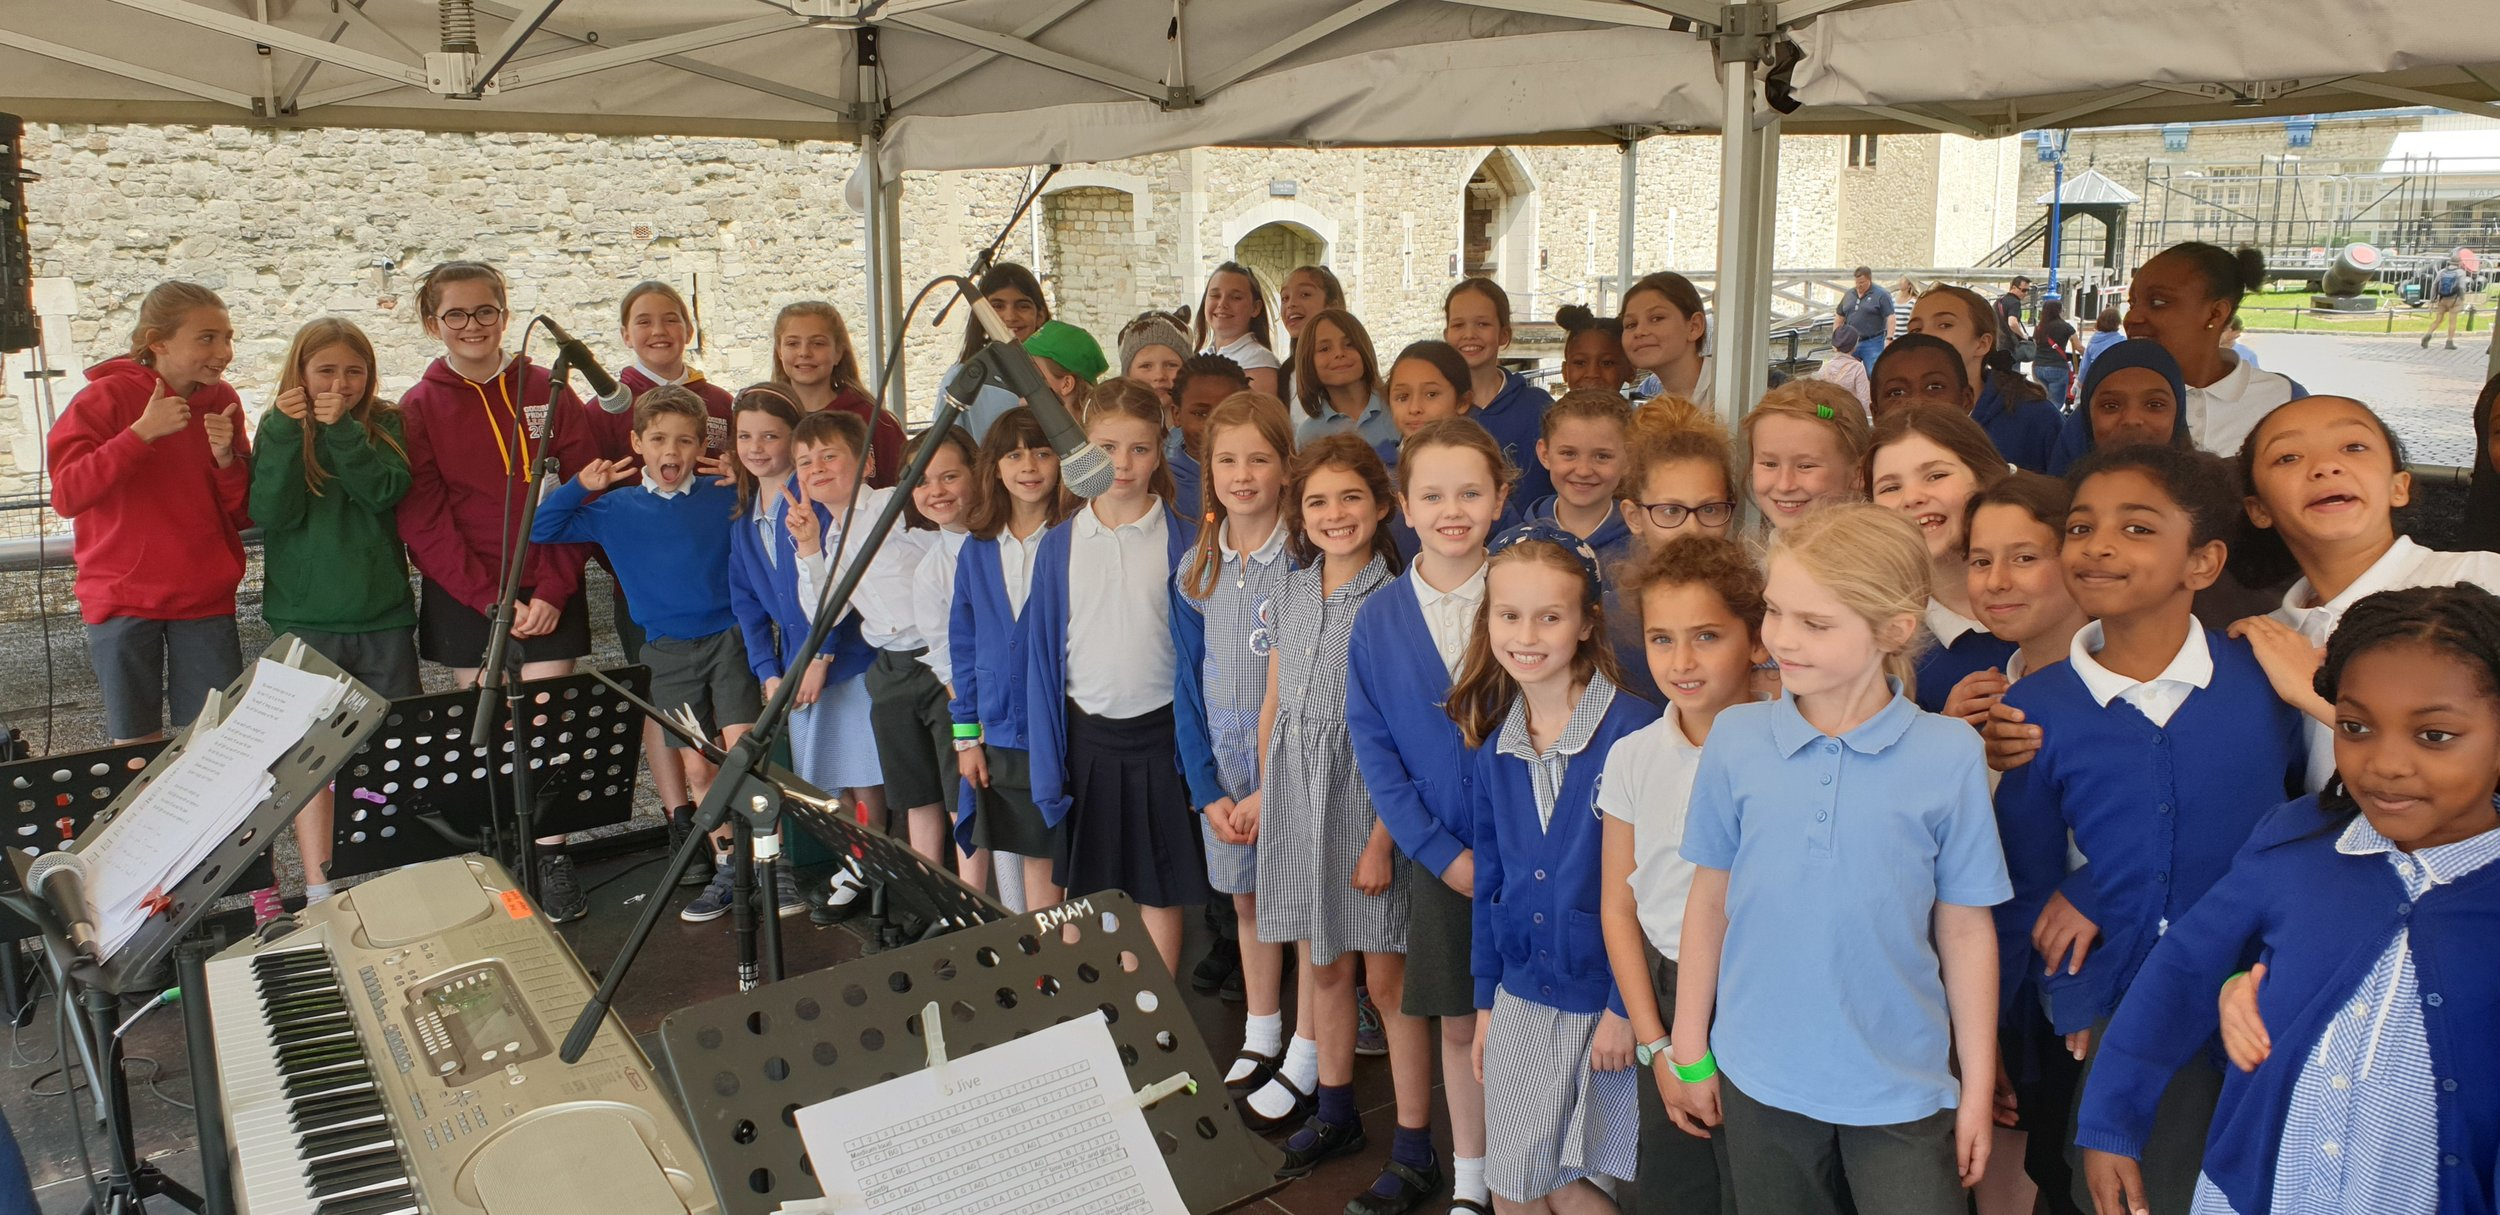 The Choir - Last week, our wonderful choir went to the Tower of London to perform in the Music at the Tower Festival. Our children were awesome! Well done choir!